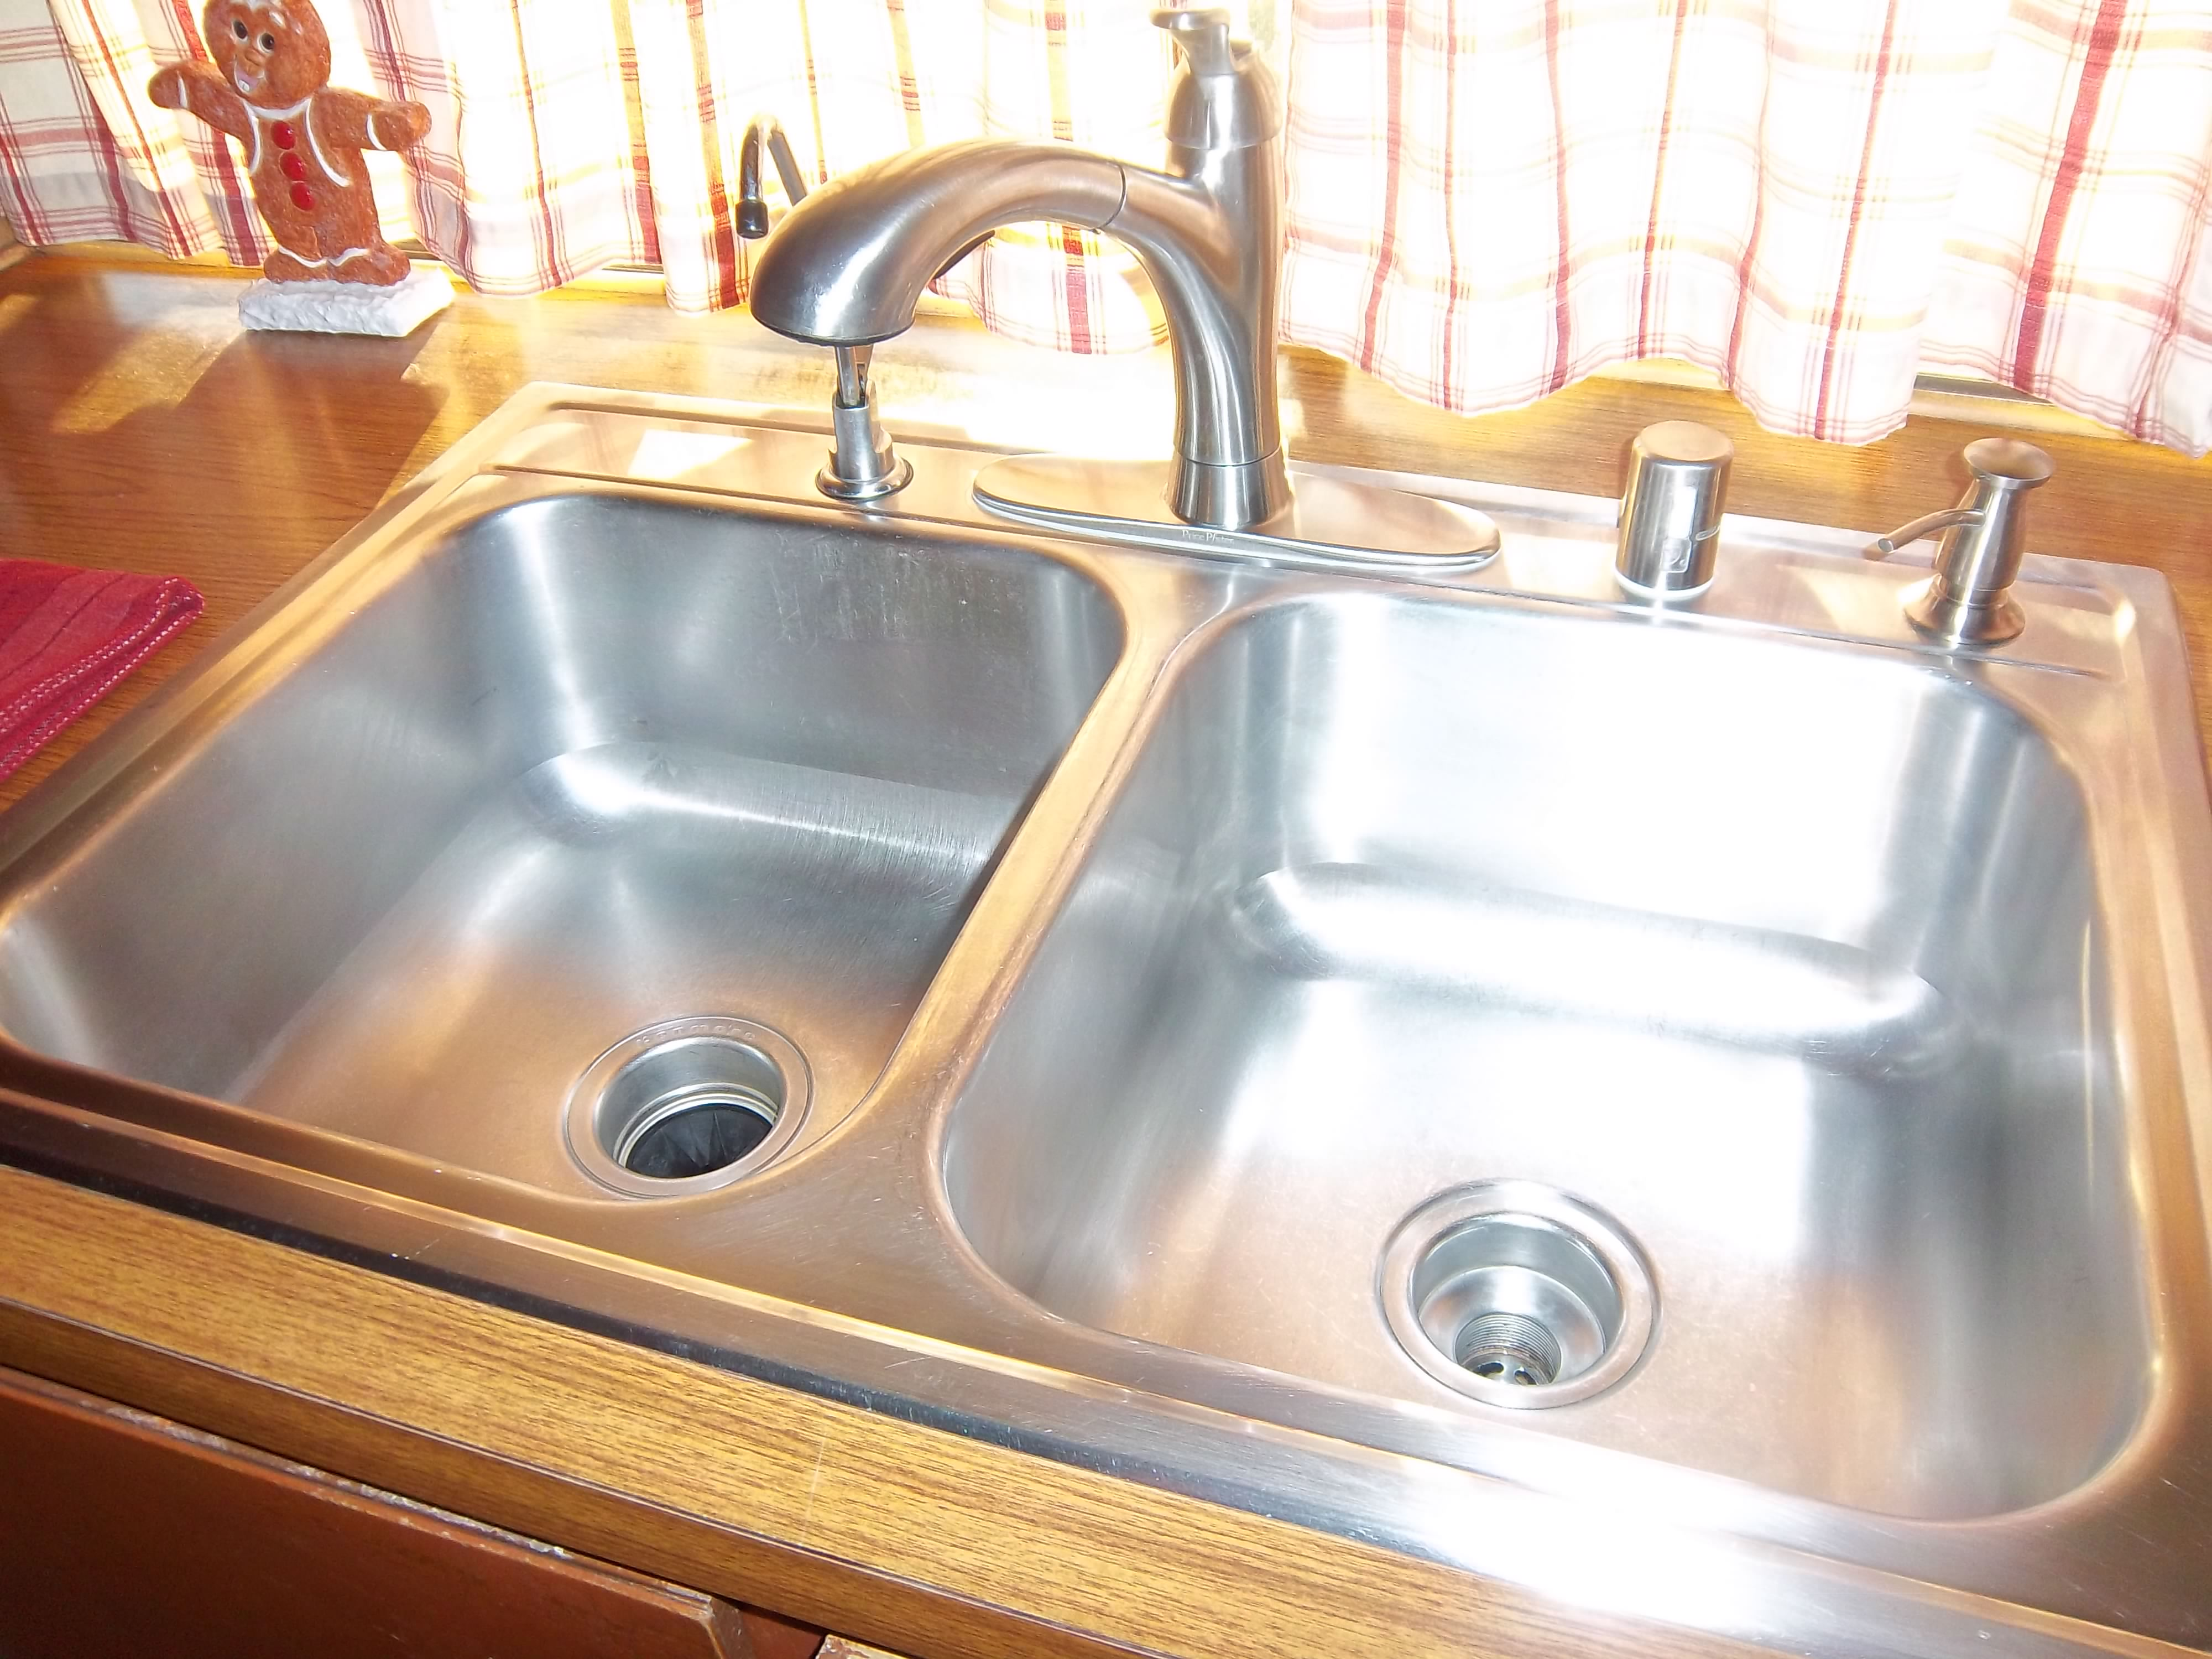 how to make kitchen sink shine flying basics day 1 shine your sink happyhomehabits 8749